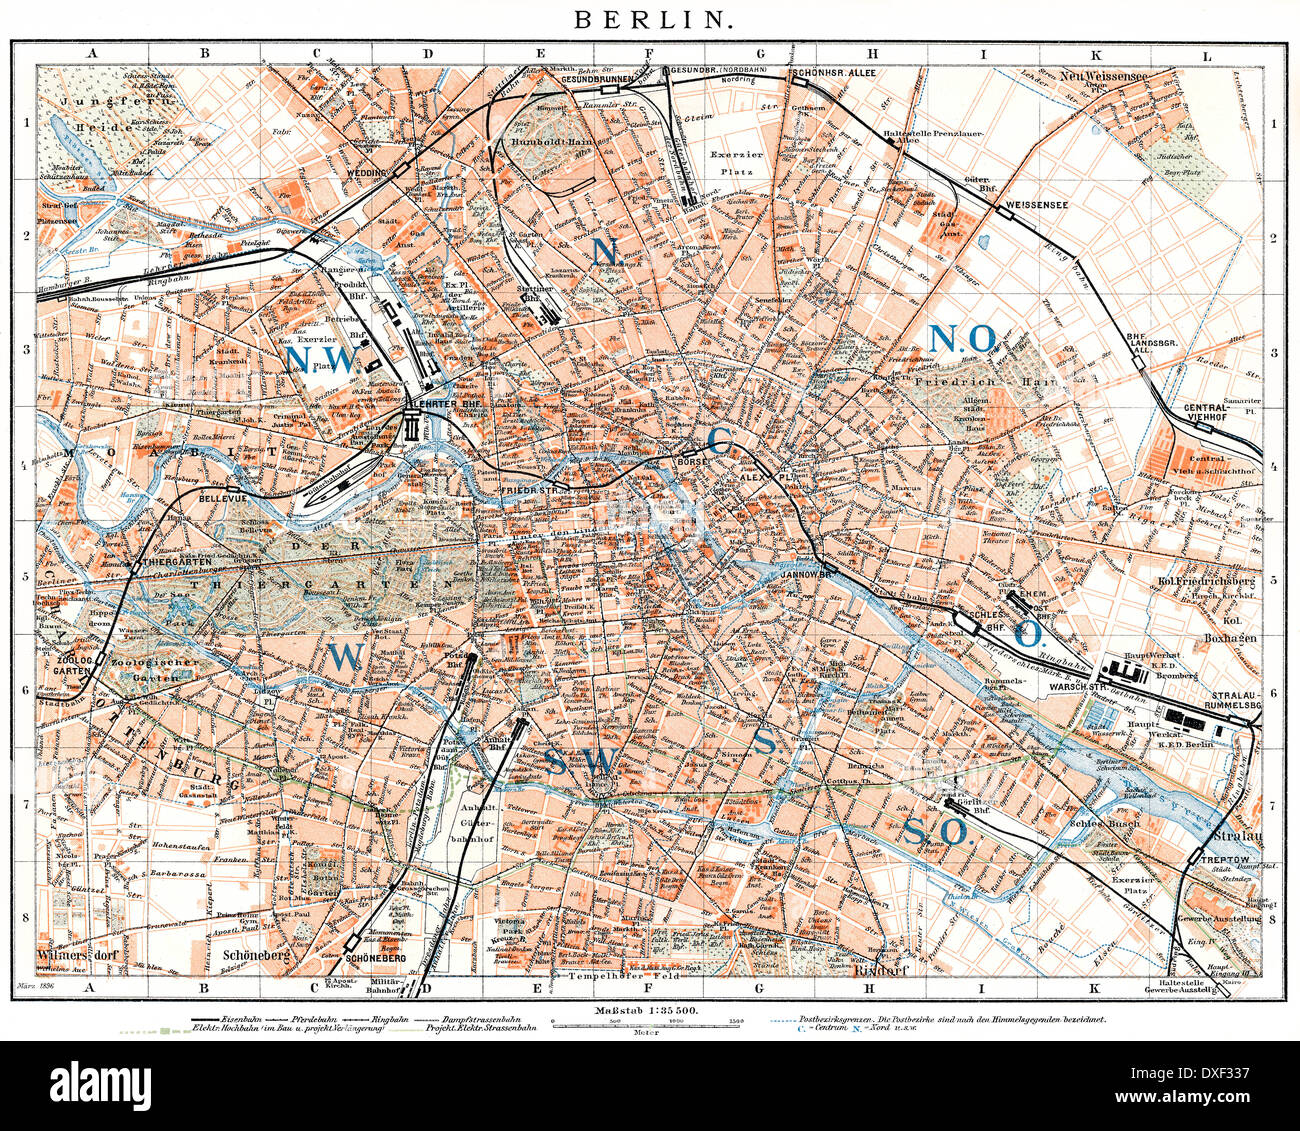 Historic map of Berlin, Germany, 1896, 19th century - Stock Image